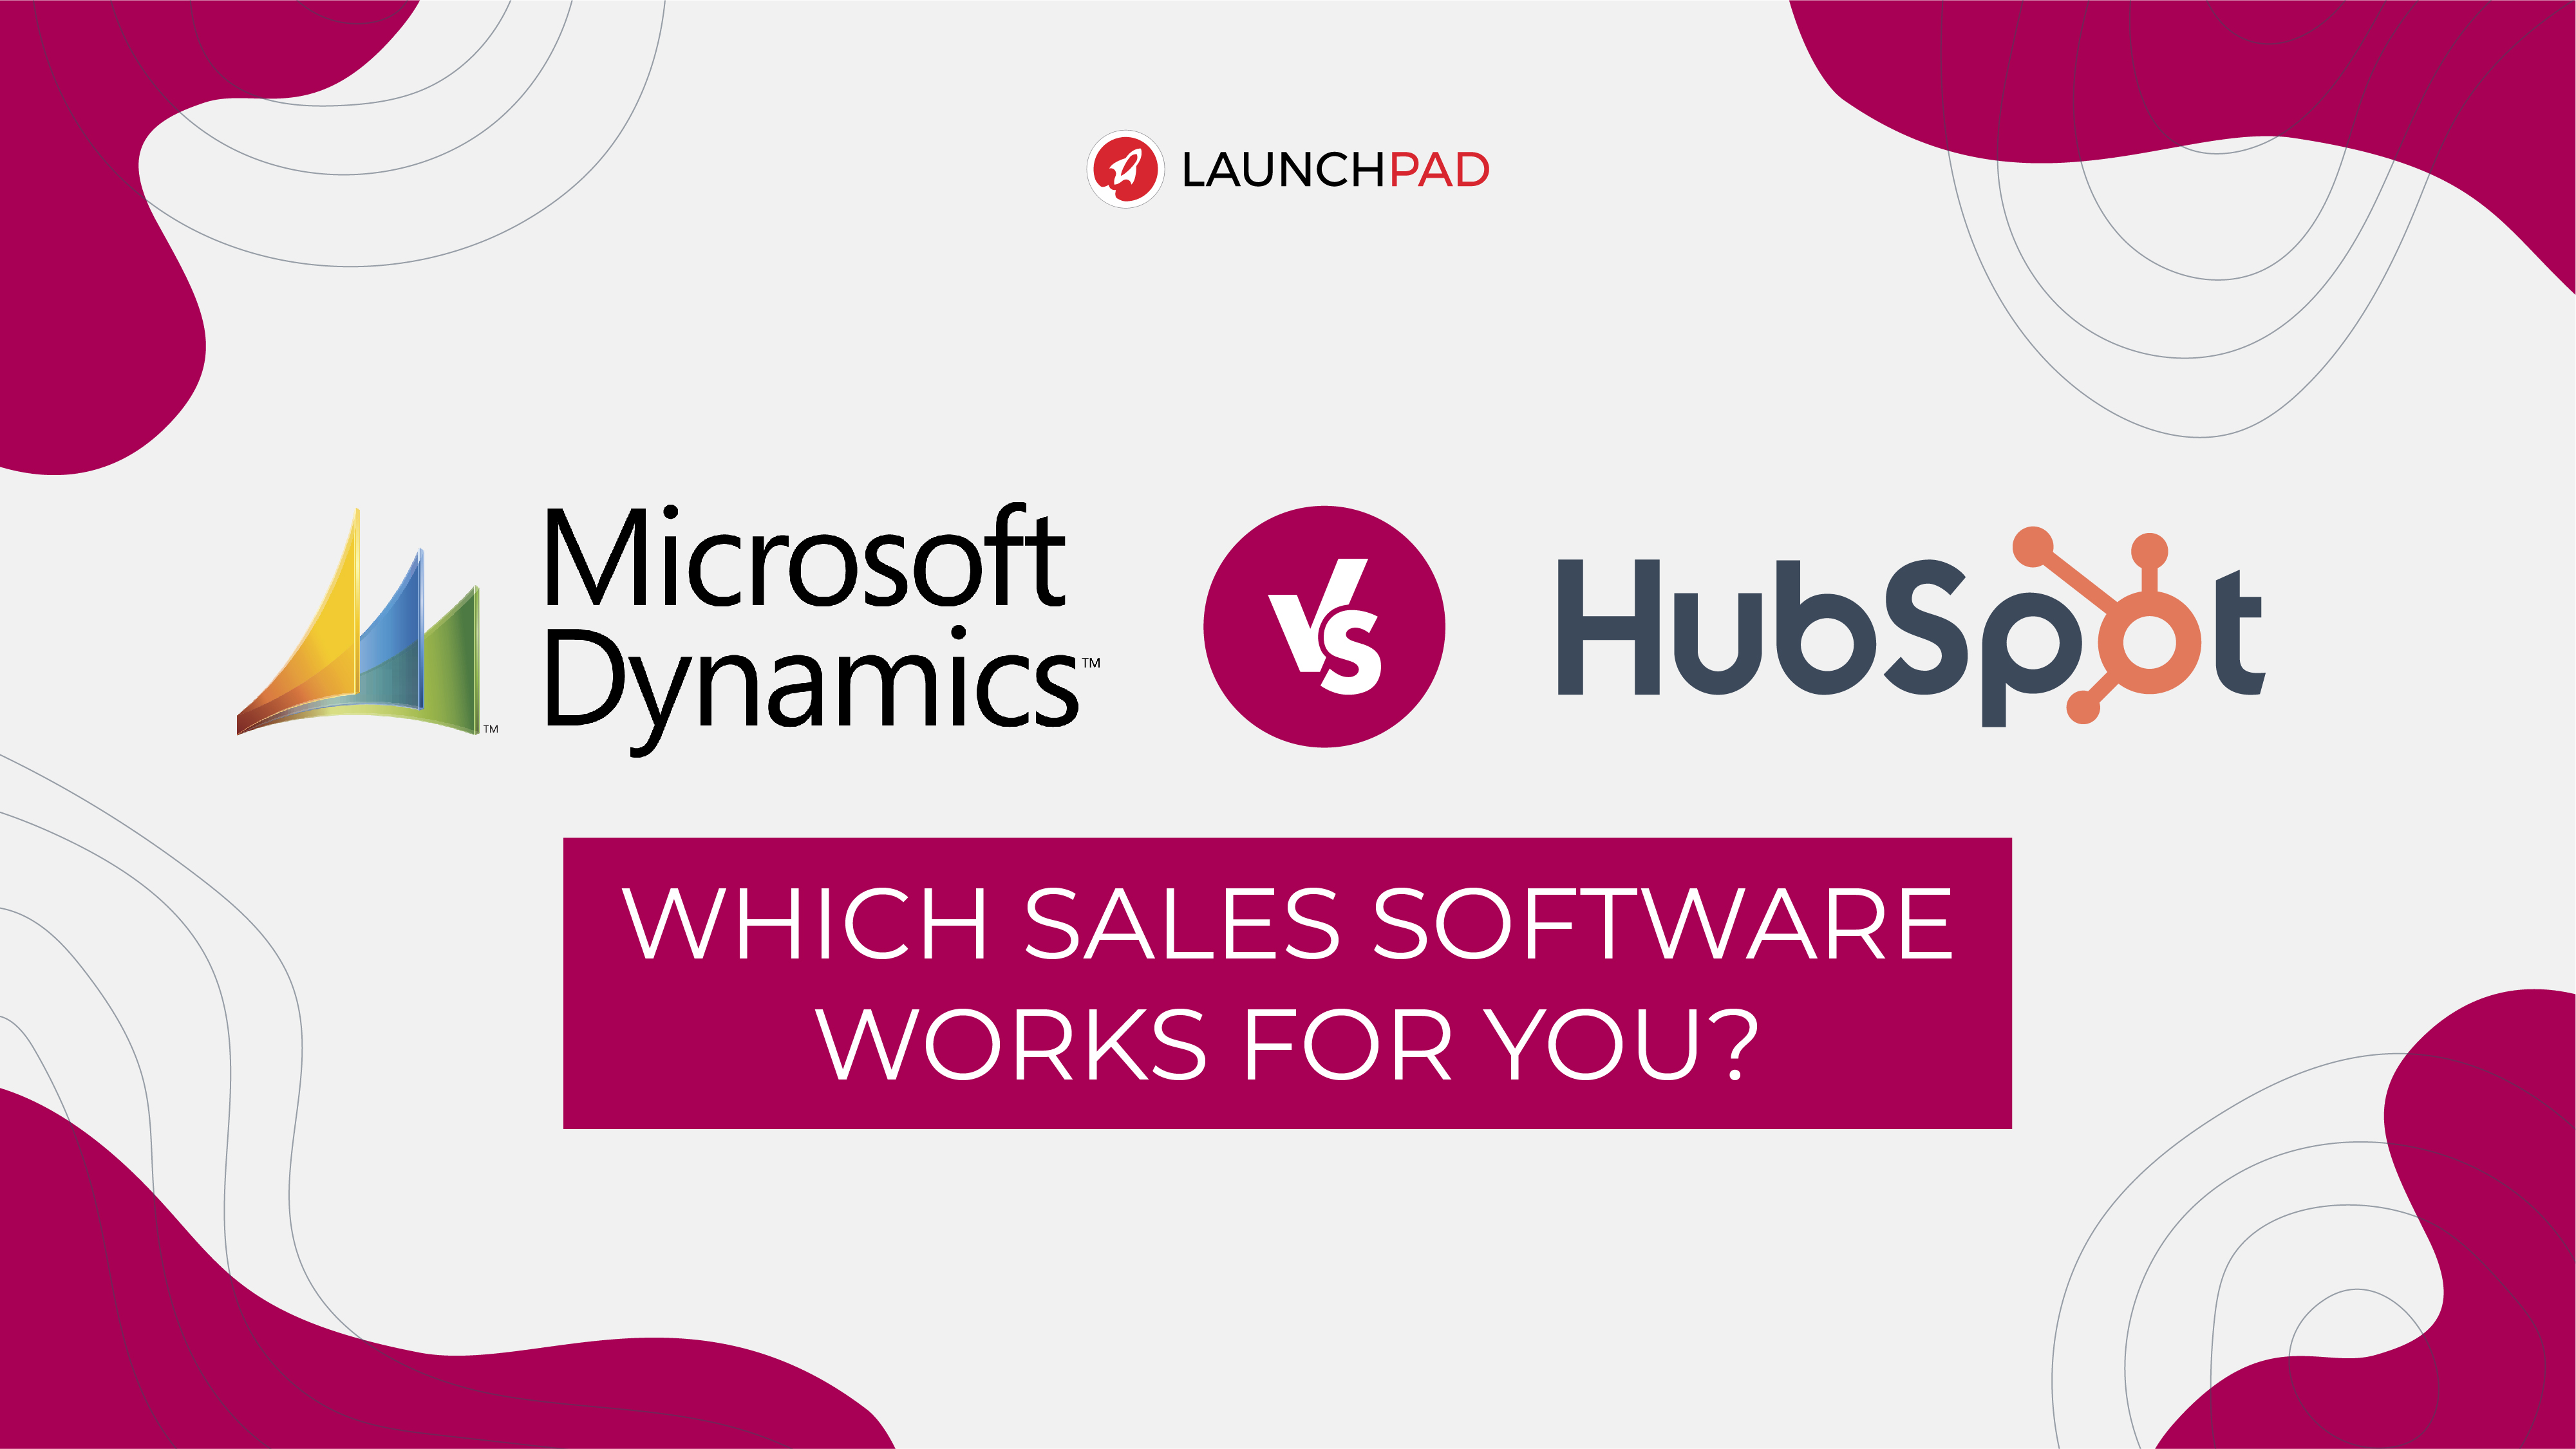 Blog[SM]-Microsoft Dynamics vs Hubspot- Which Sales Software Works for You_-02